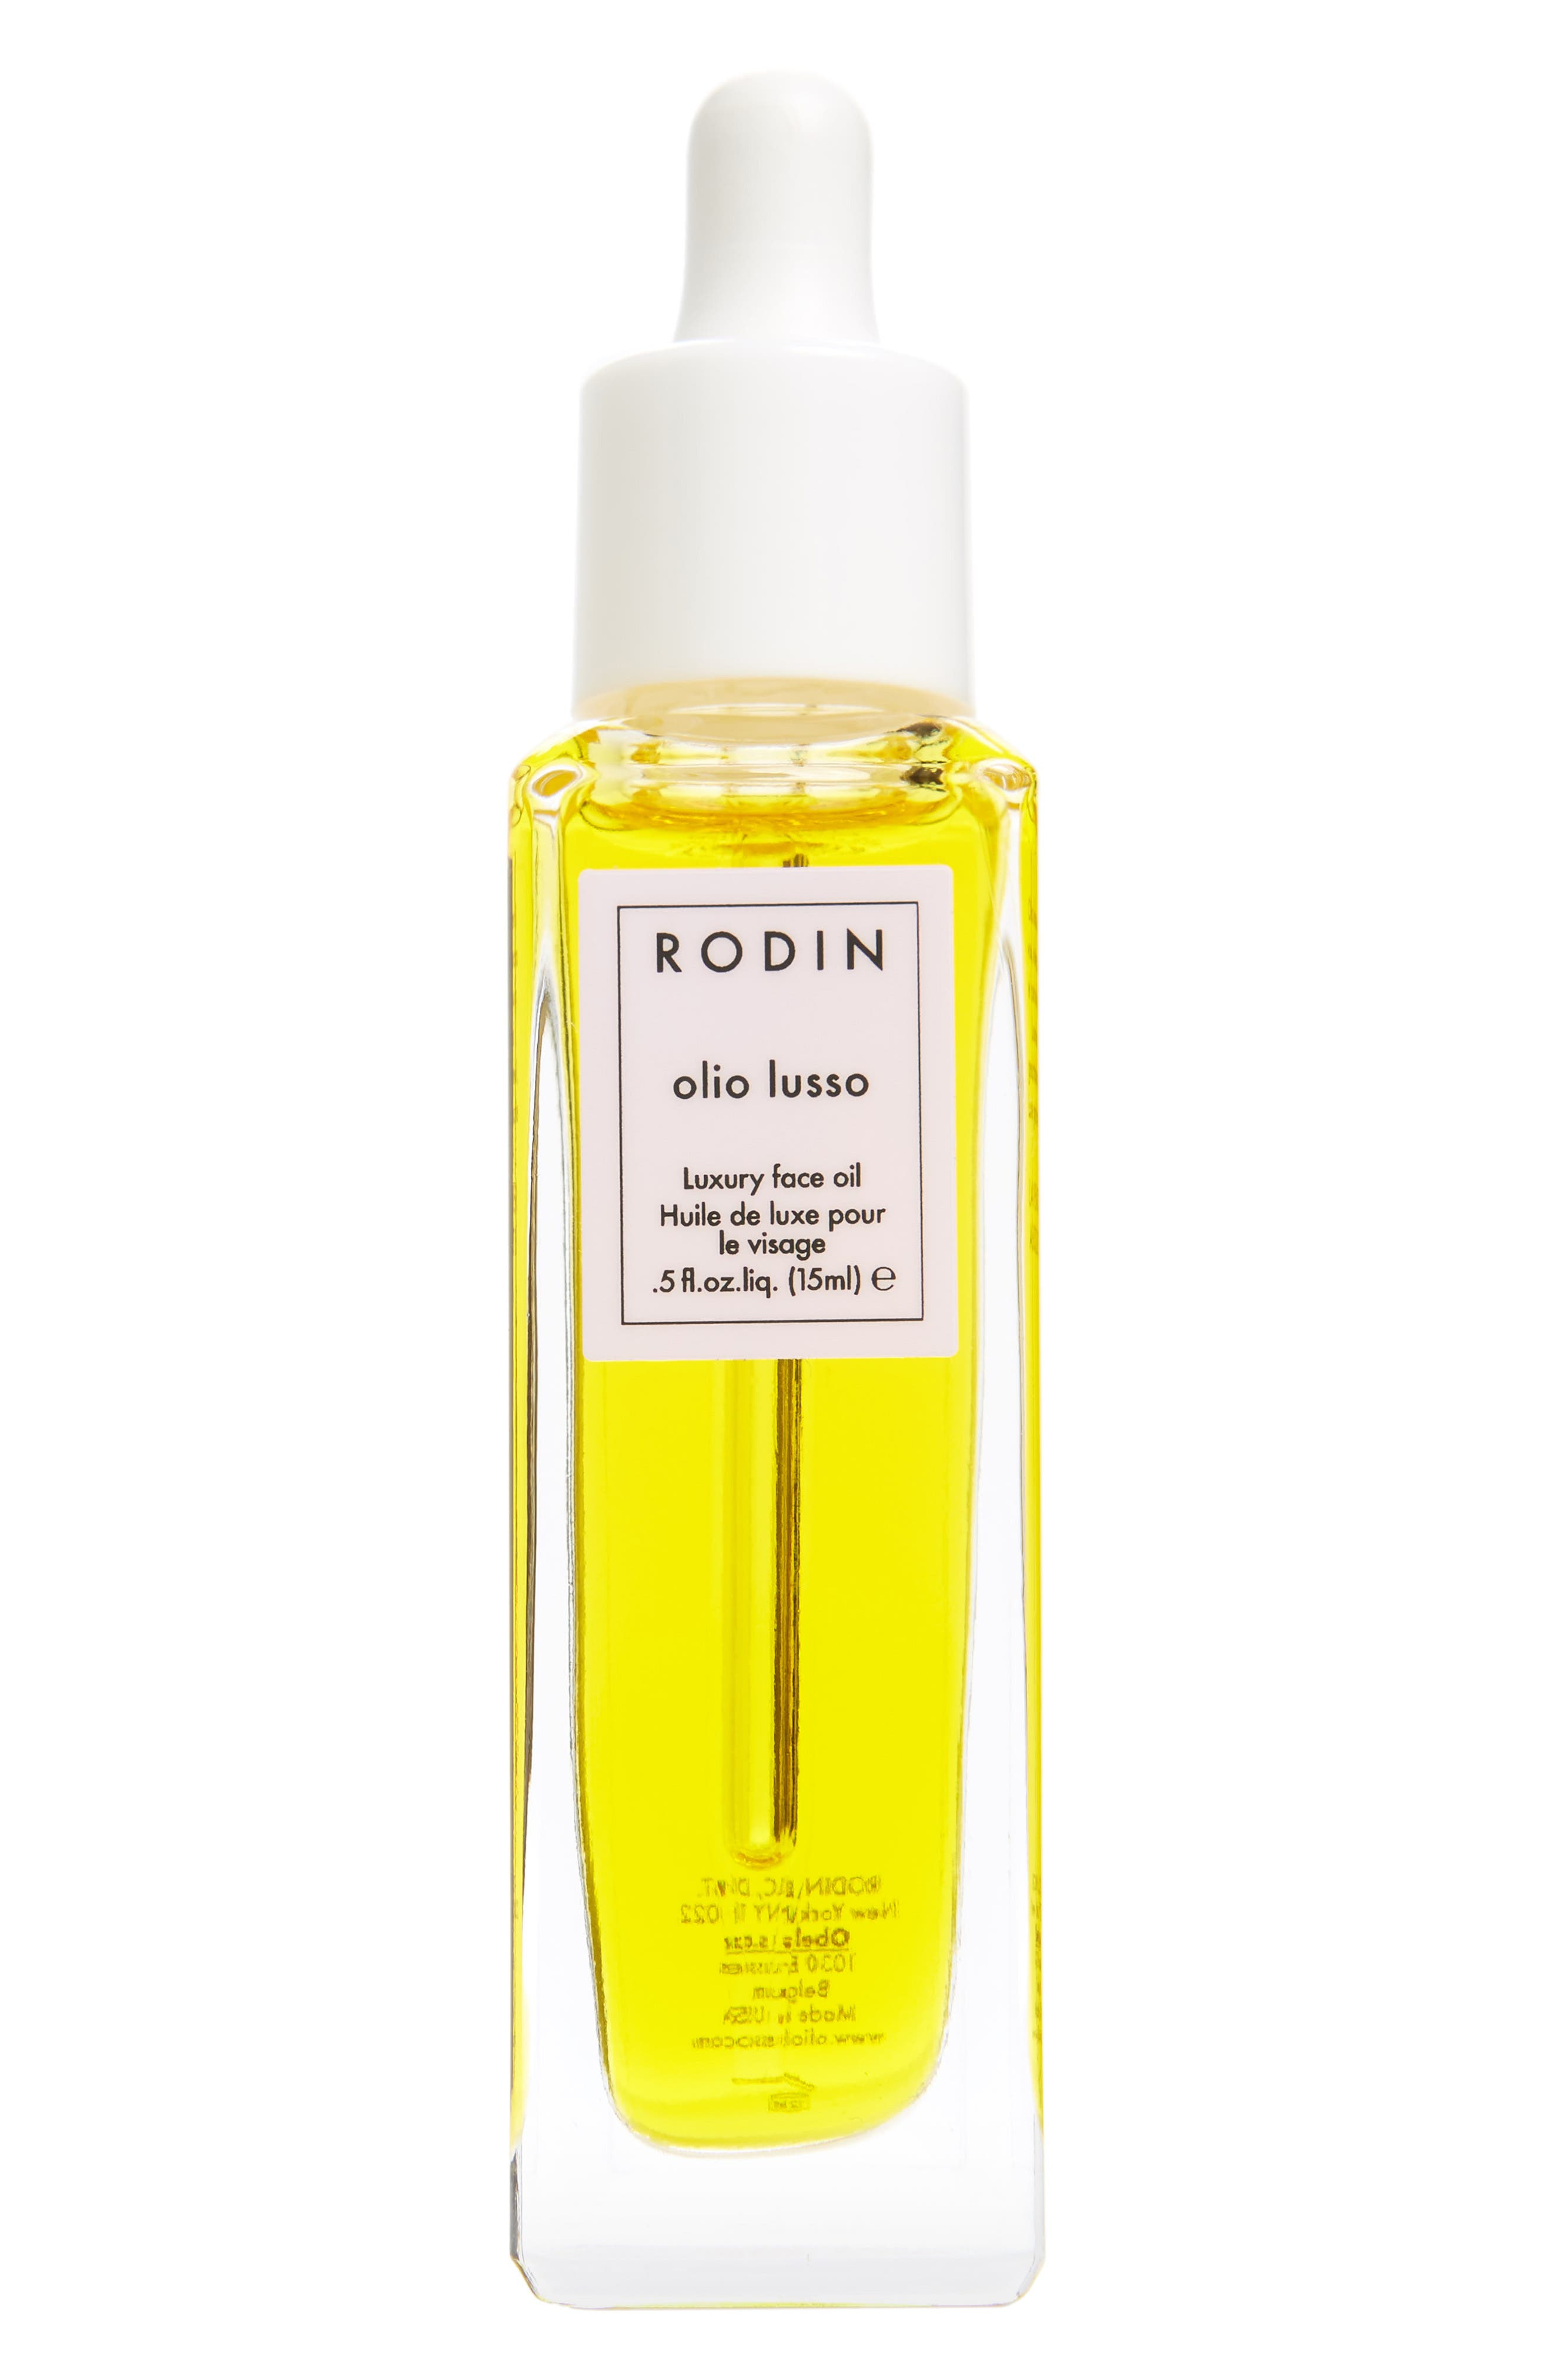 RODIN olio lusso Lavender Absolute Face Oil (Nordstrom Exclusive)